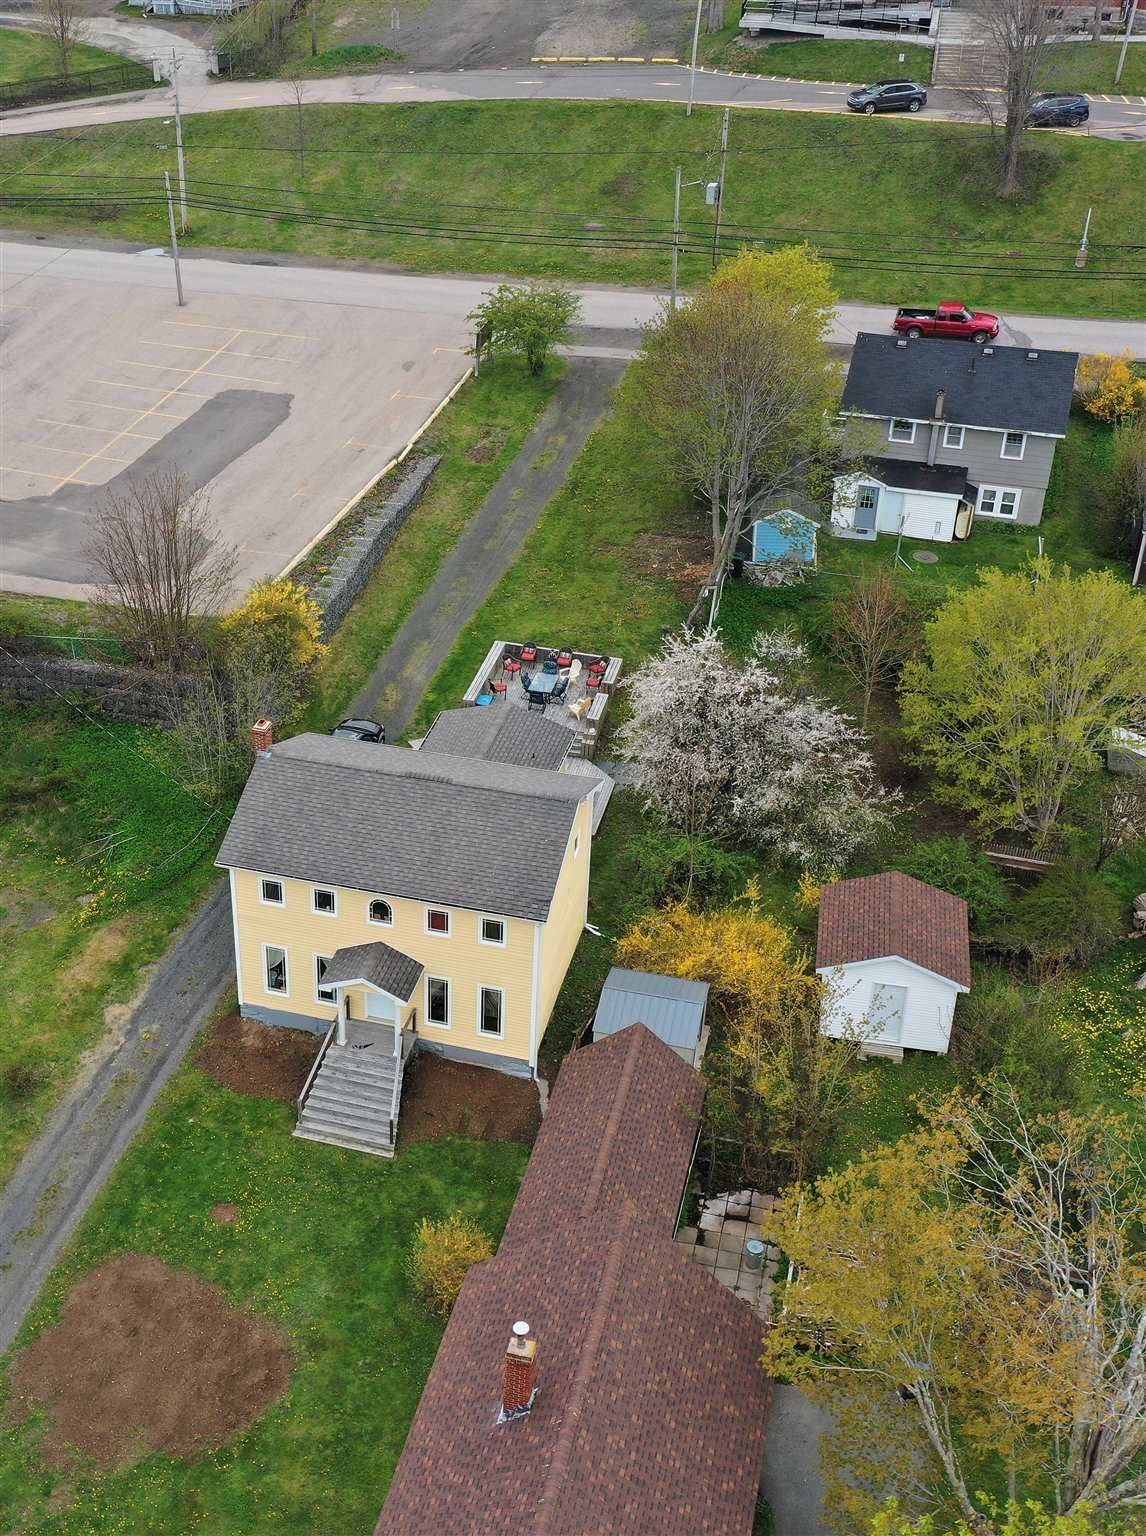 Main Photo: 113 FIRST Avenue in Digby: 401-Digby County Residential for sale (Annapolis Valley)  : MLS®# 202111658